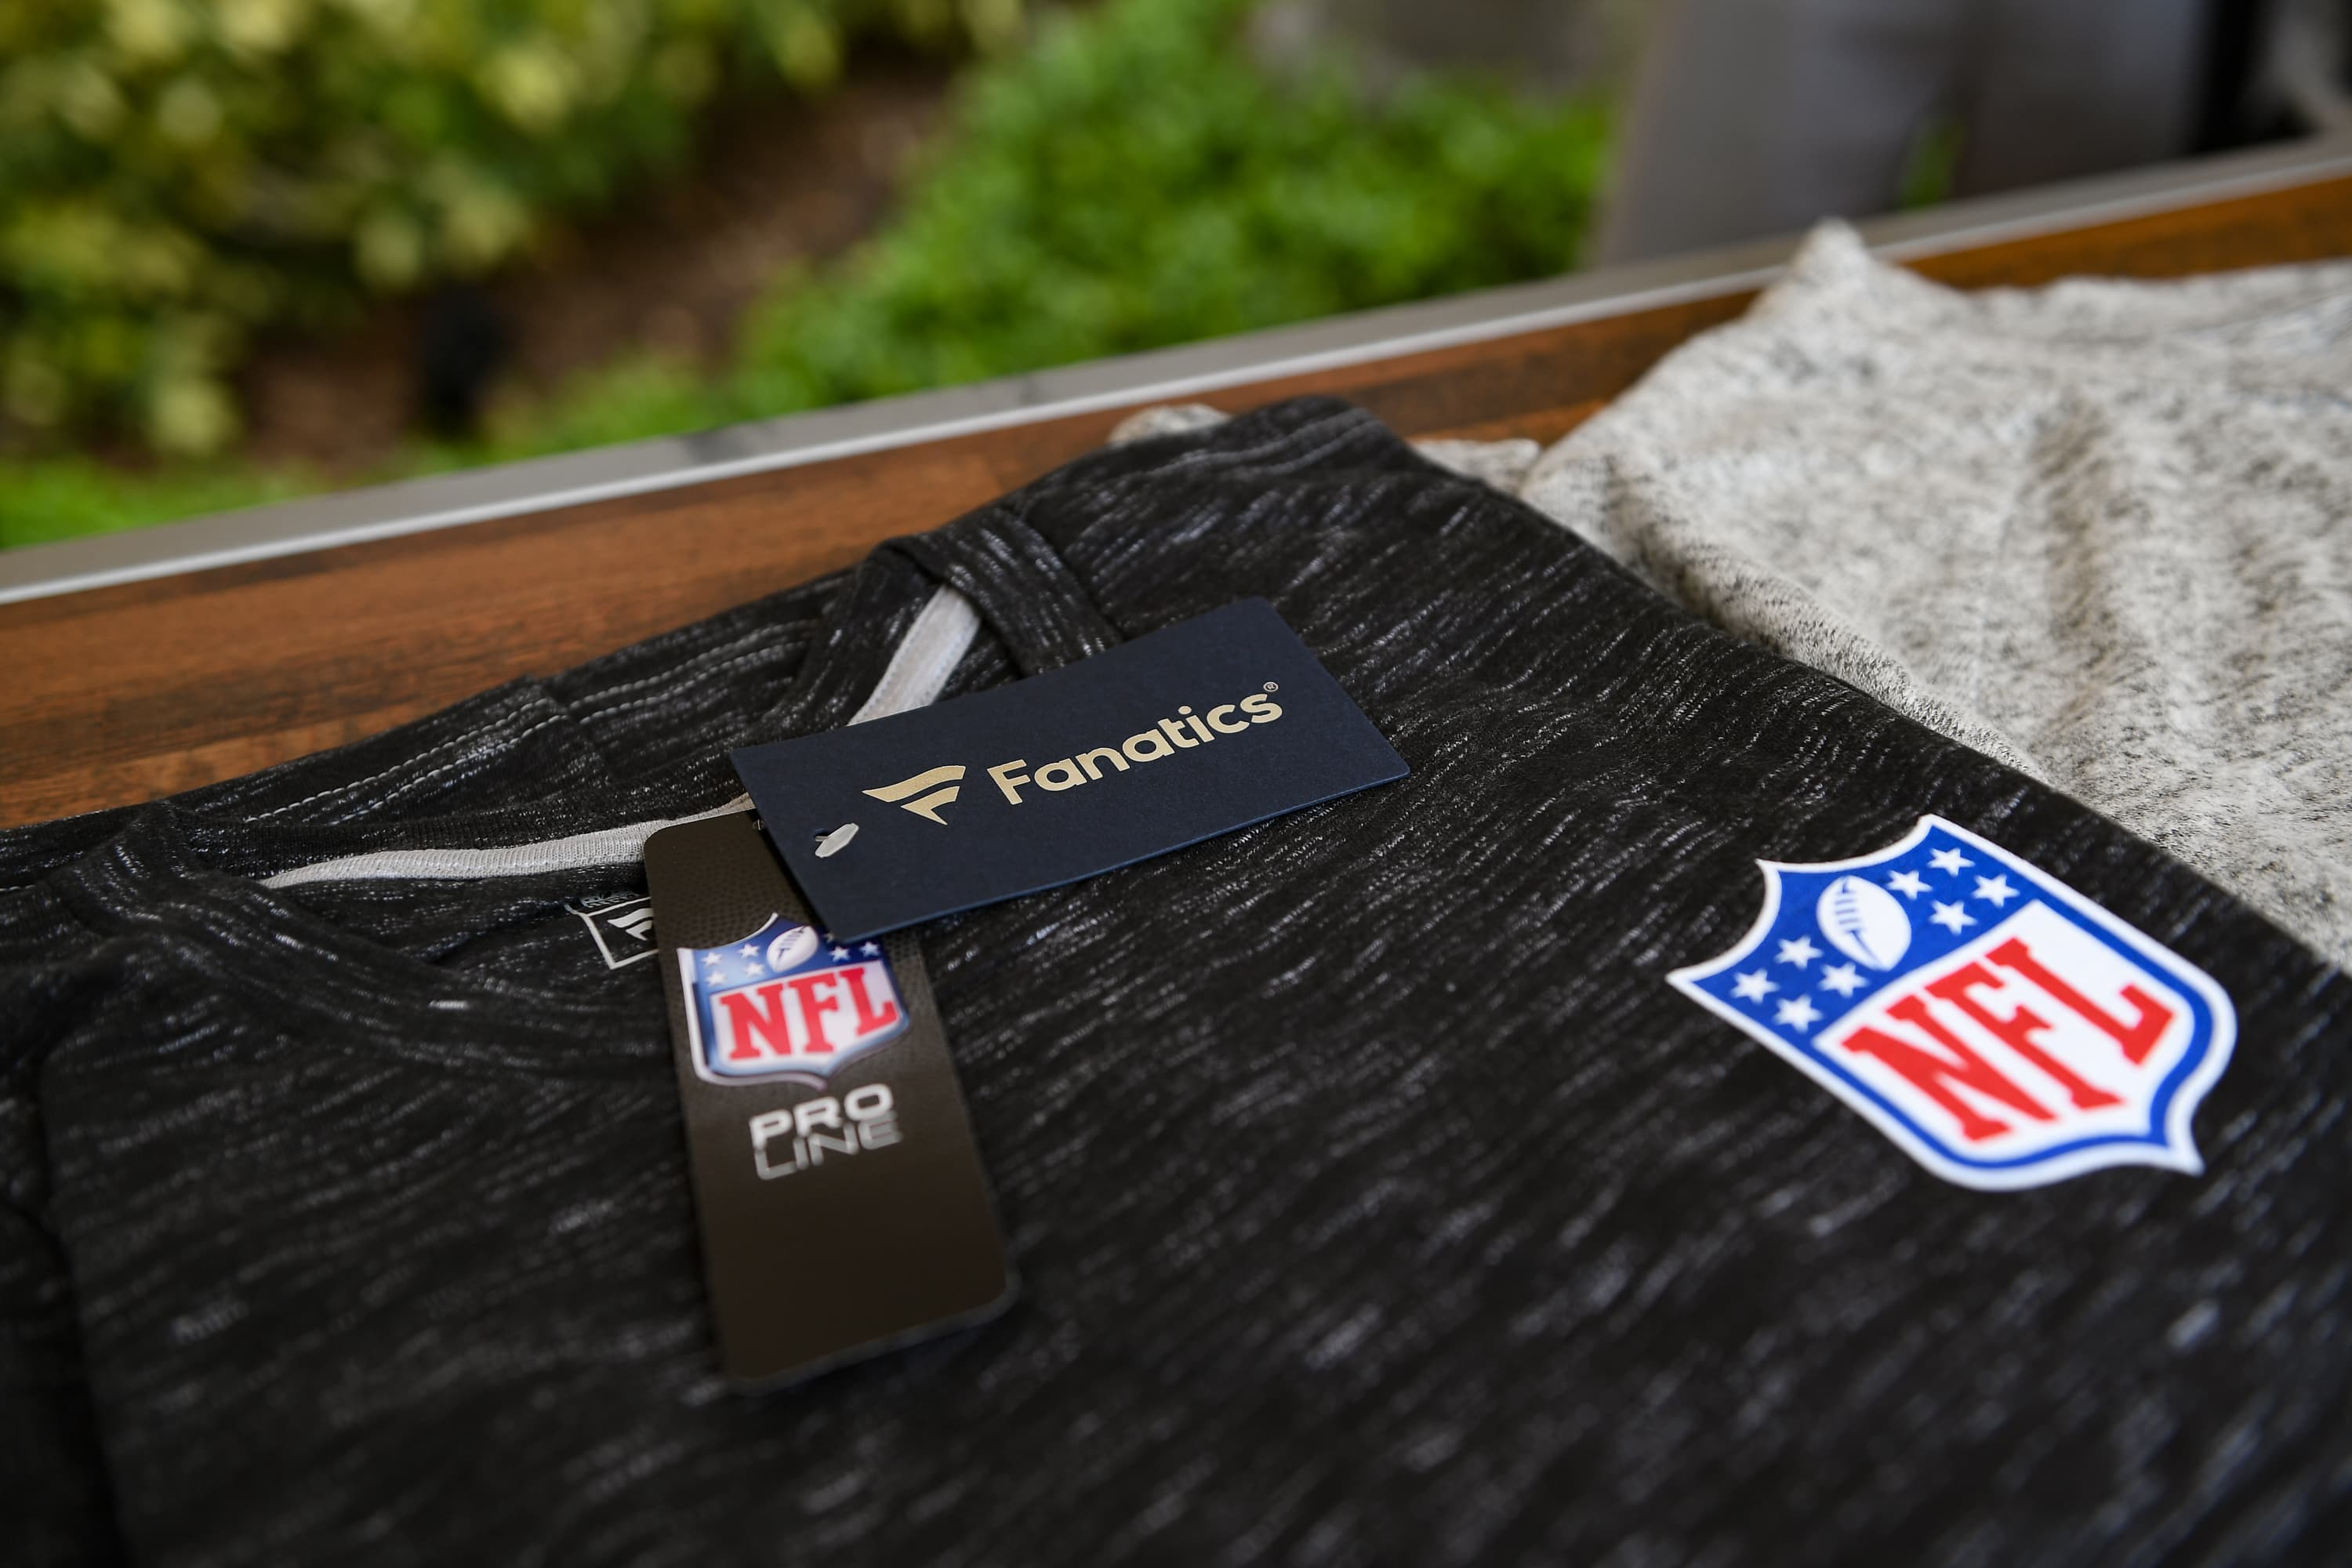 A detailed photo of the Fanatics apparel displayed at NFL Hospitality during the 2018 NFL Annual Meetings at the Ritz Carlton Orlando, Great Lakes on March 26, 2018 in Orlando, Florida.